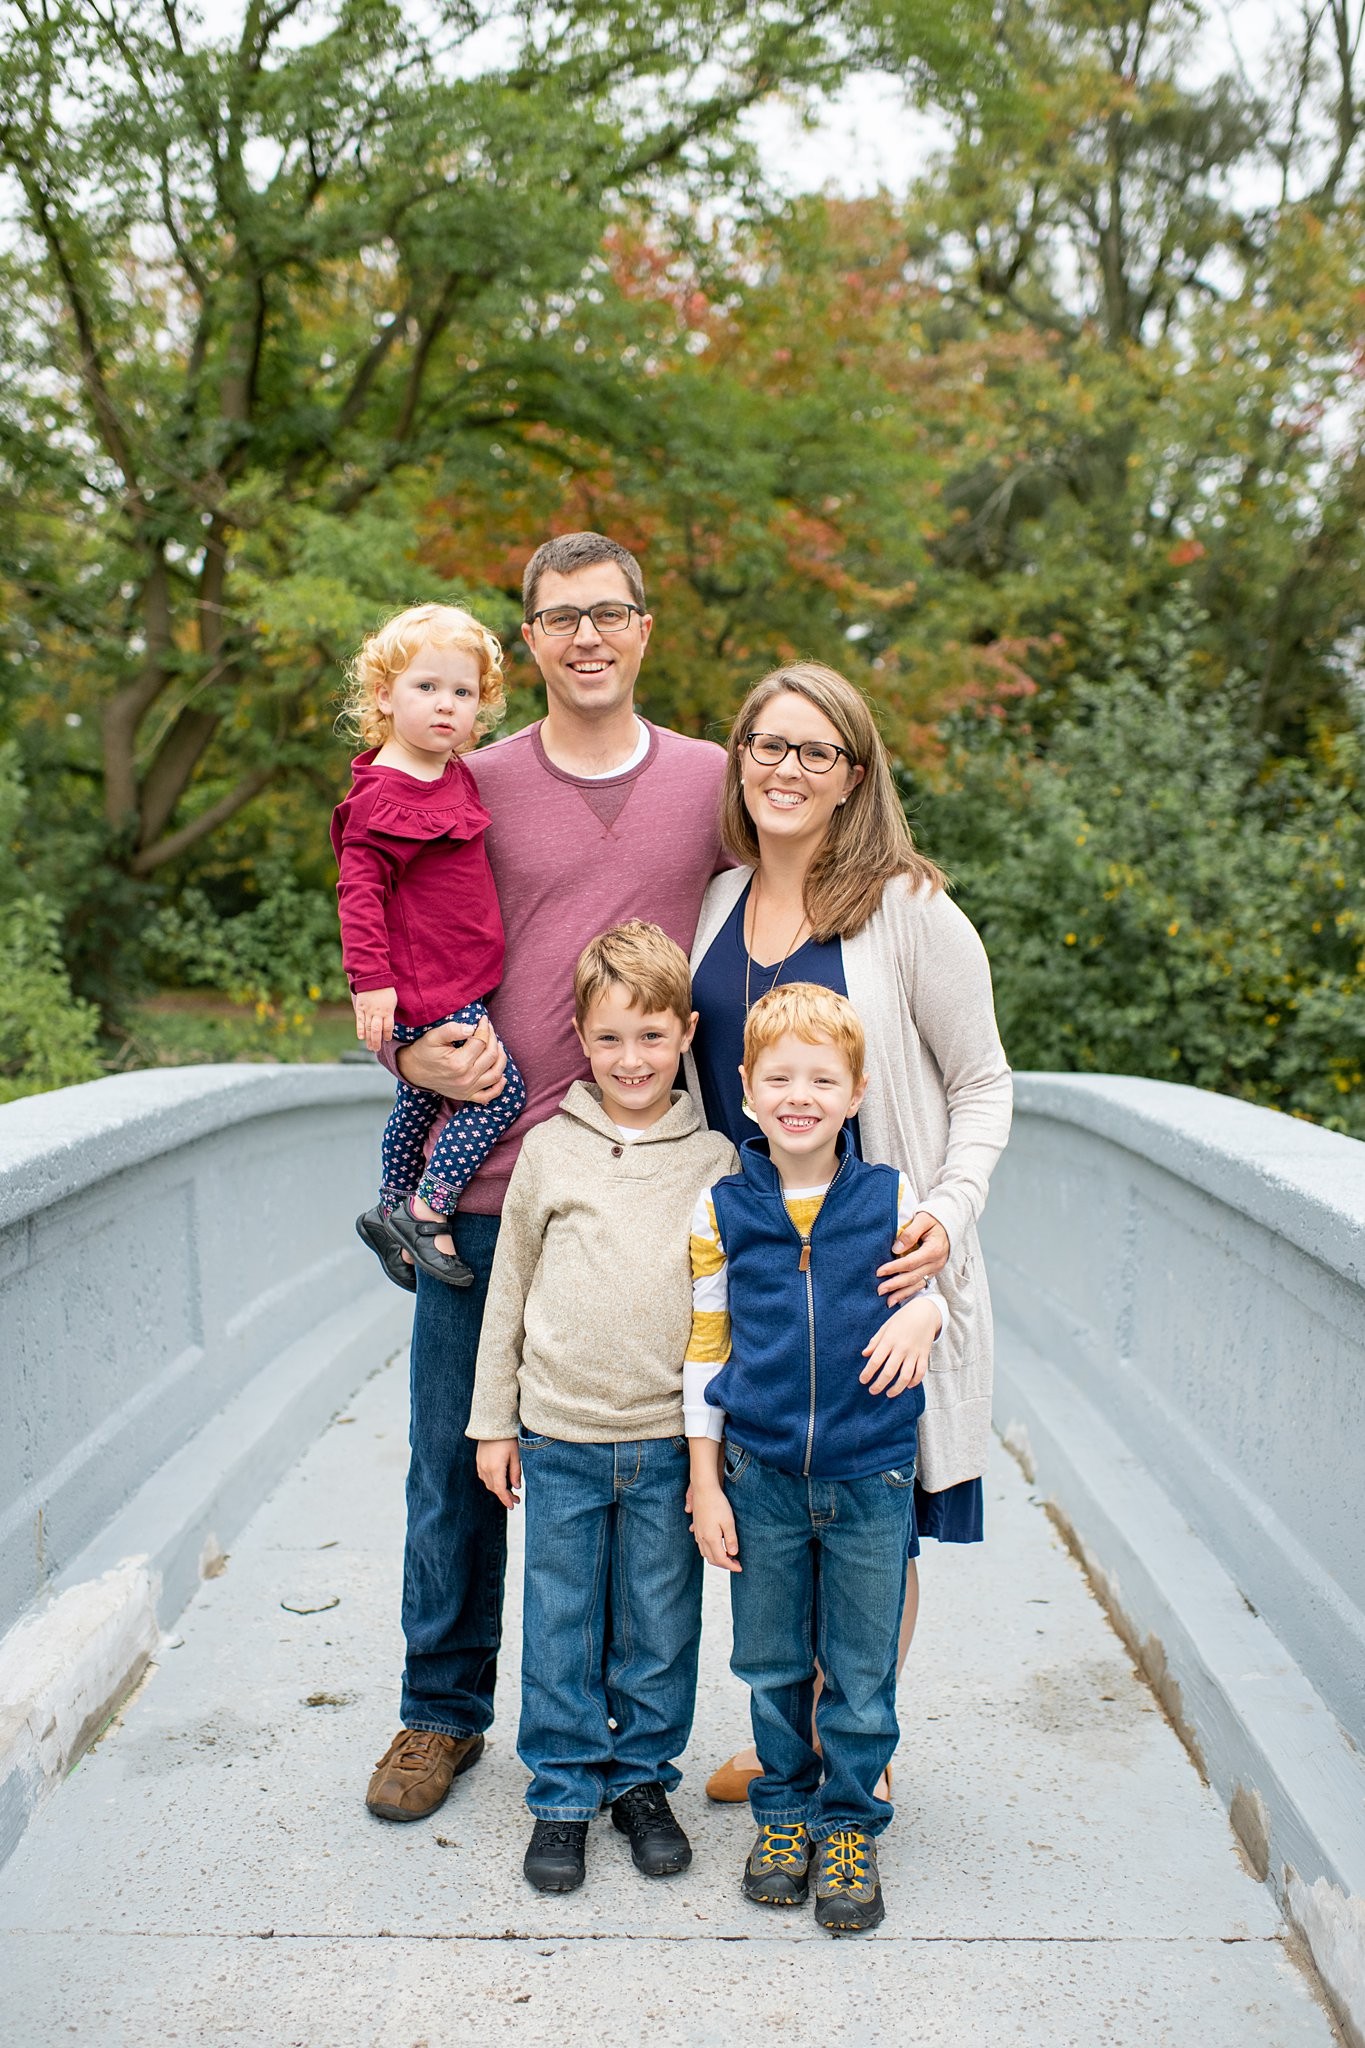 michigan lifestyle family photographer6.jpg